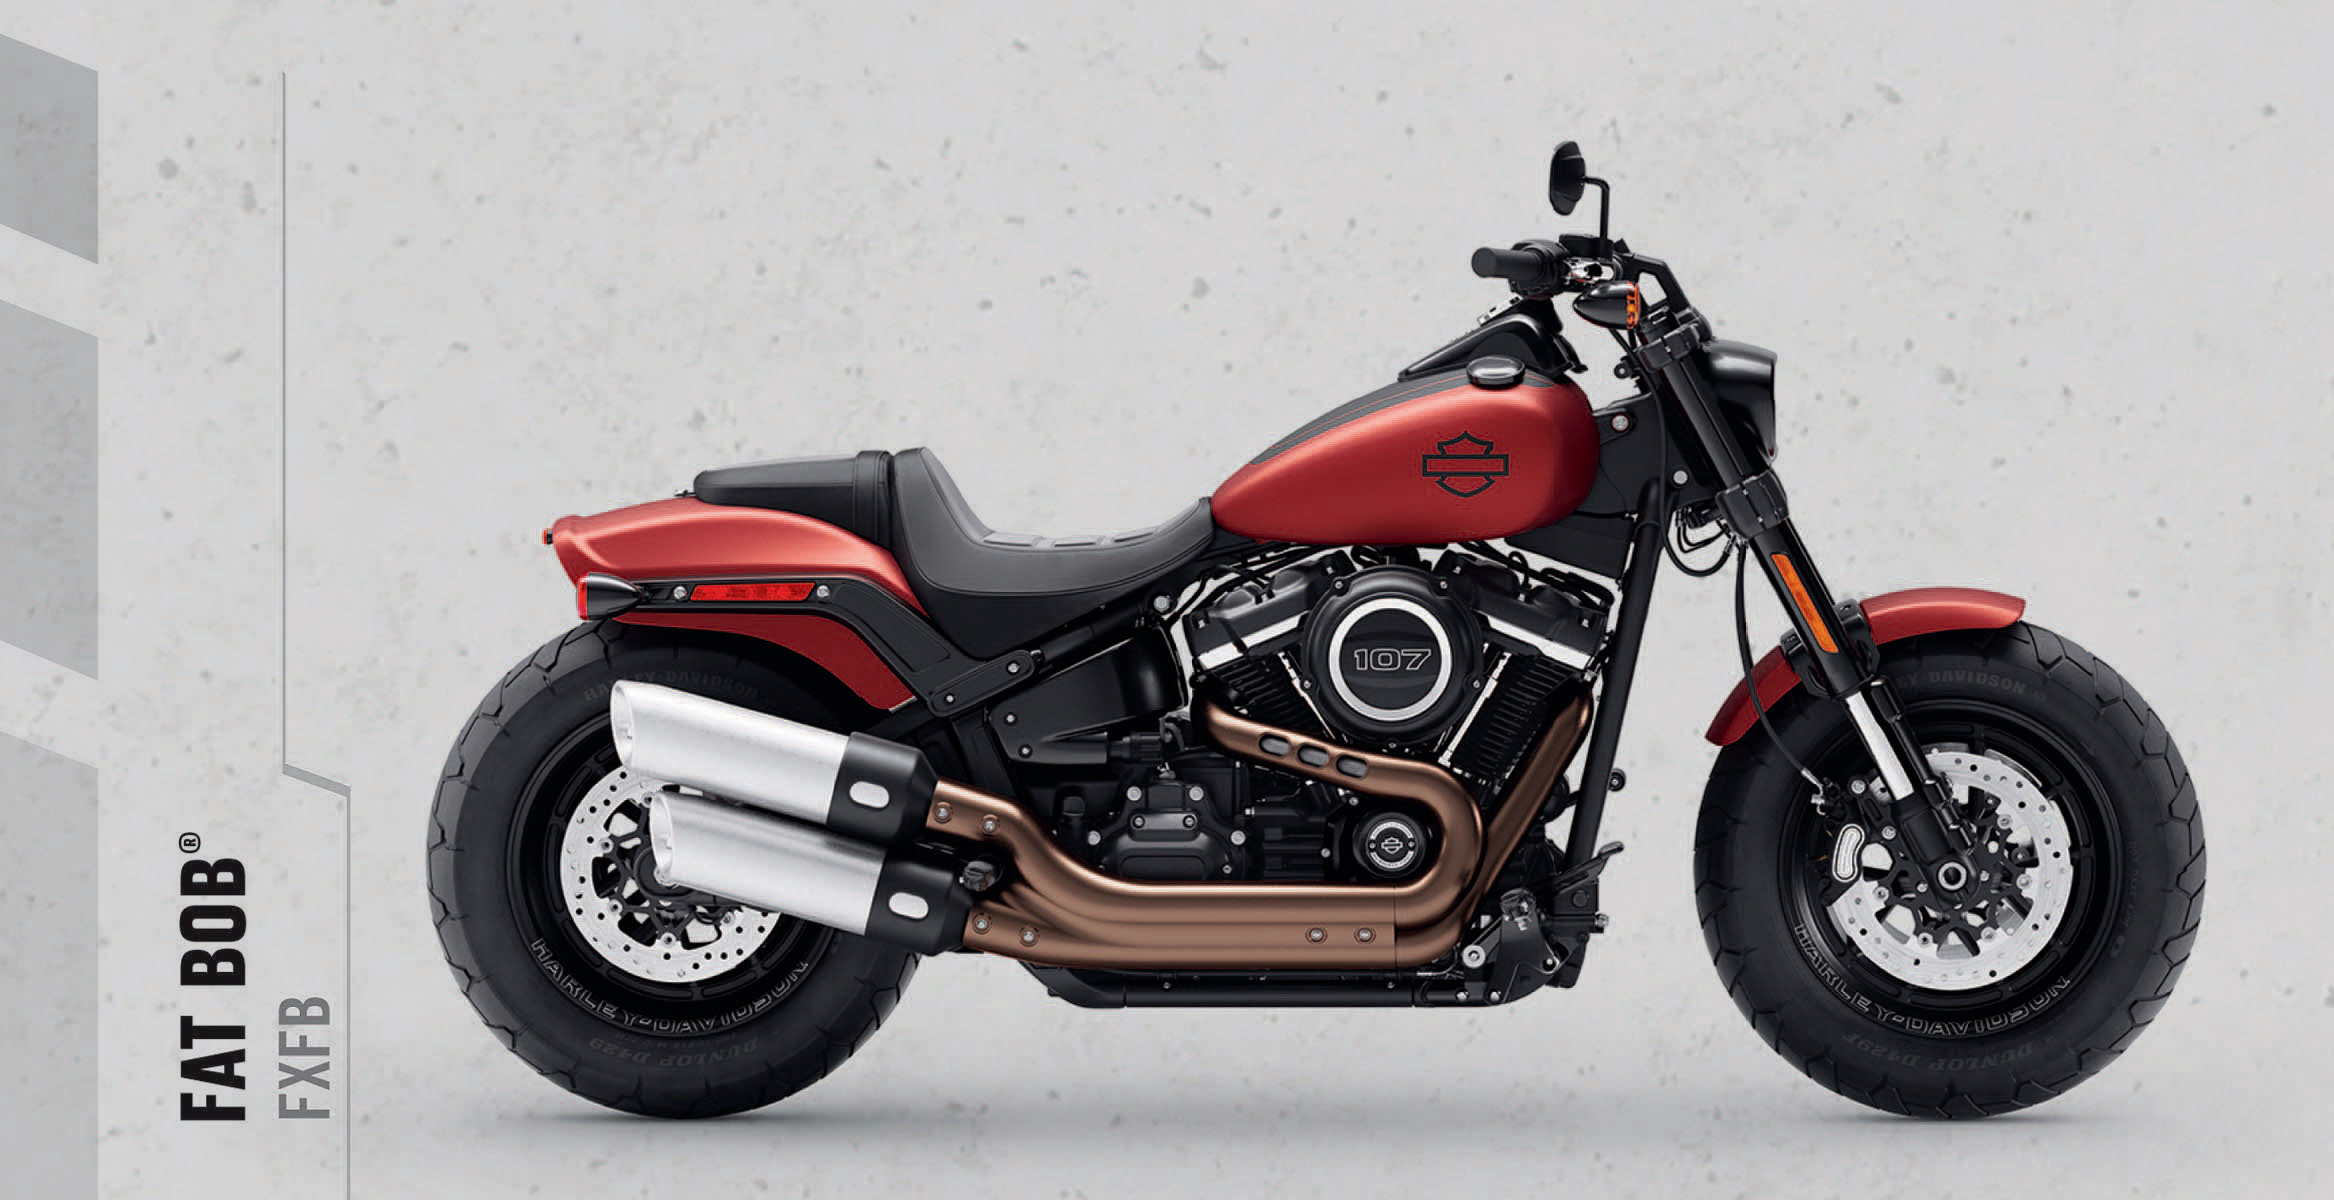 Fat Bob® 114   The Fat Bob® motorcycle features aggressive, unapologetic styling, mind-blowing performance and handling, premium finishes, and the massive torque of the Milwaukee-Eight® engine.